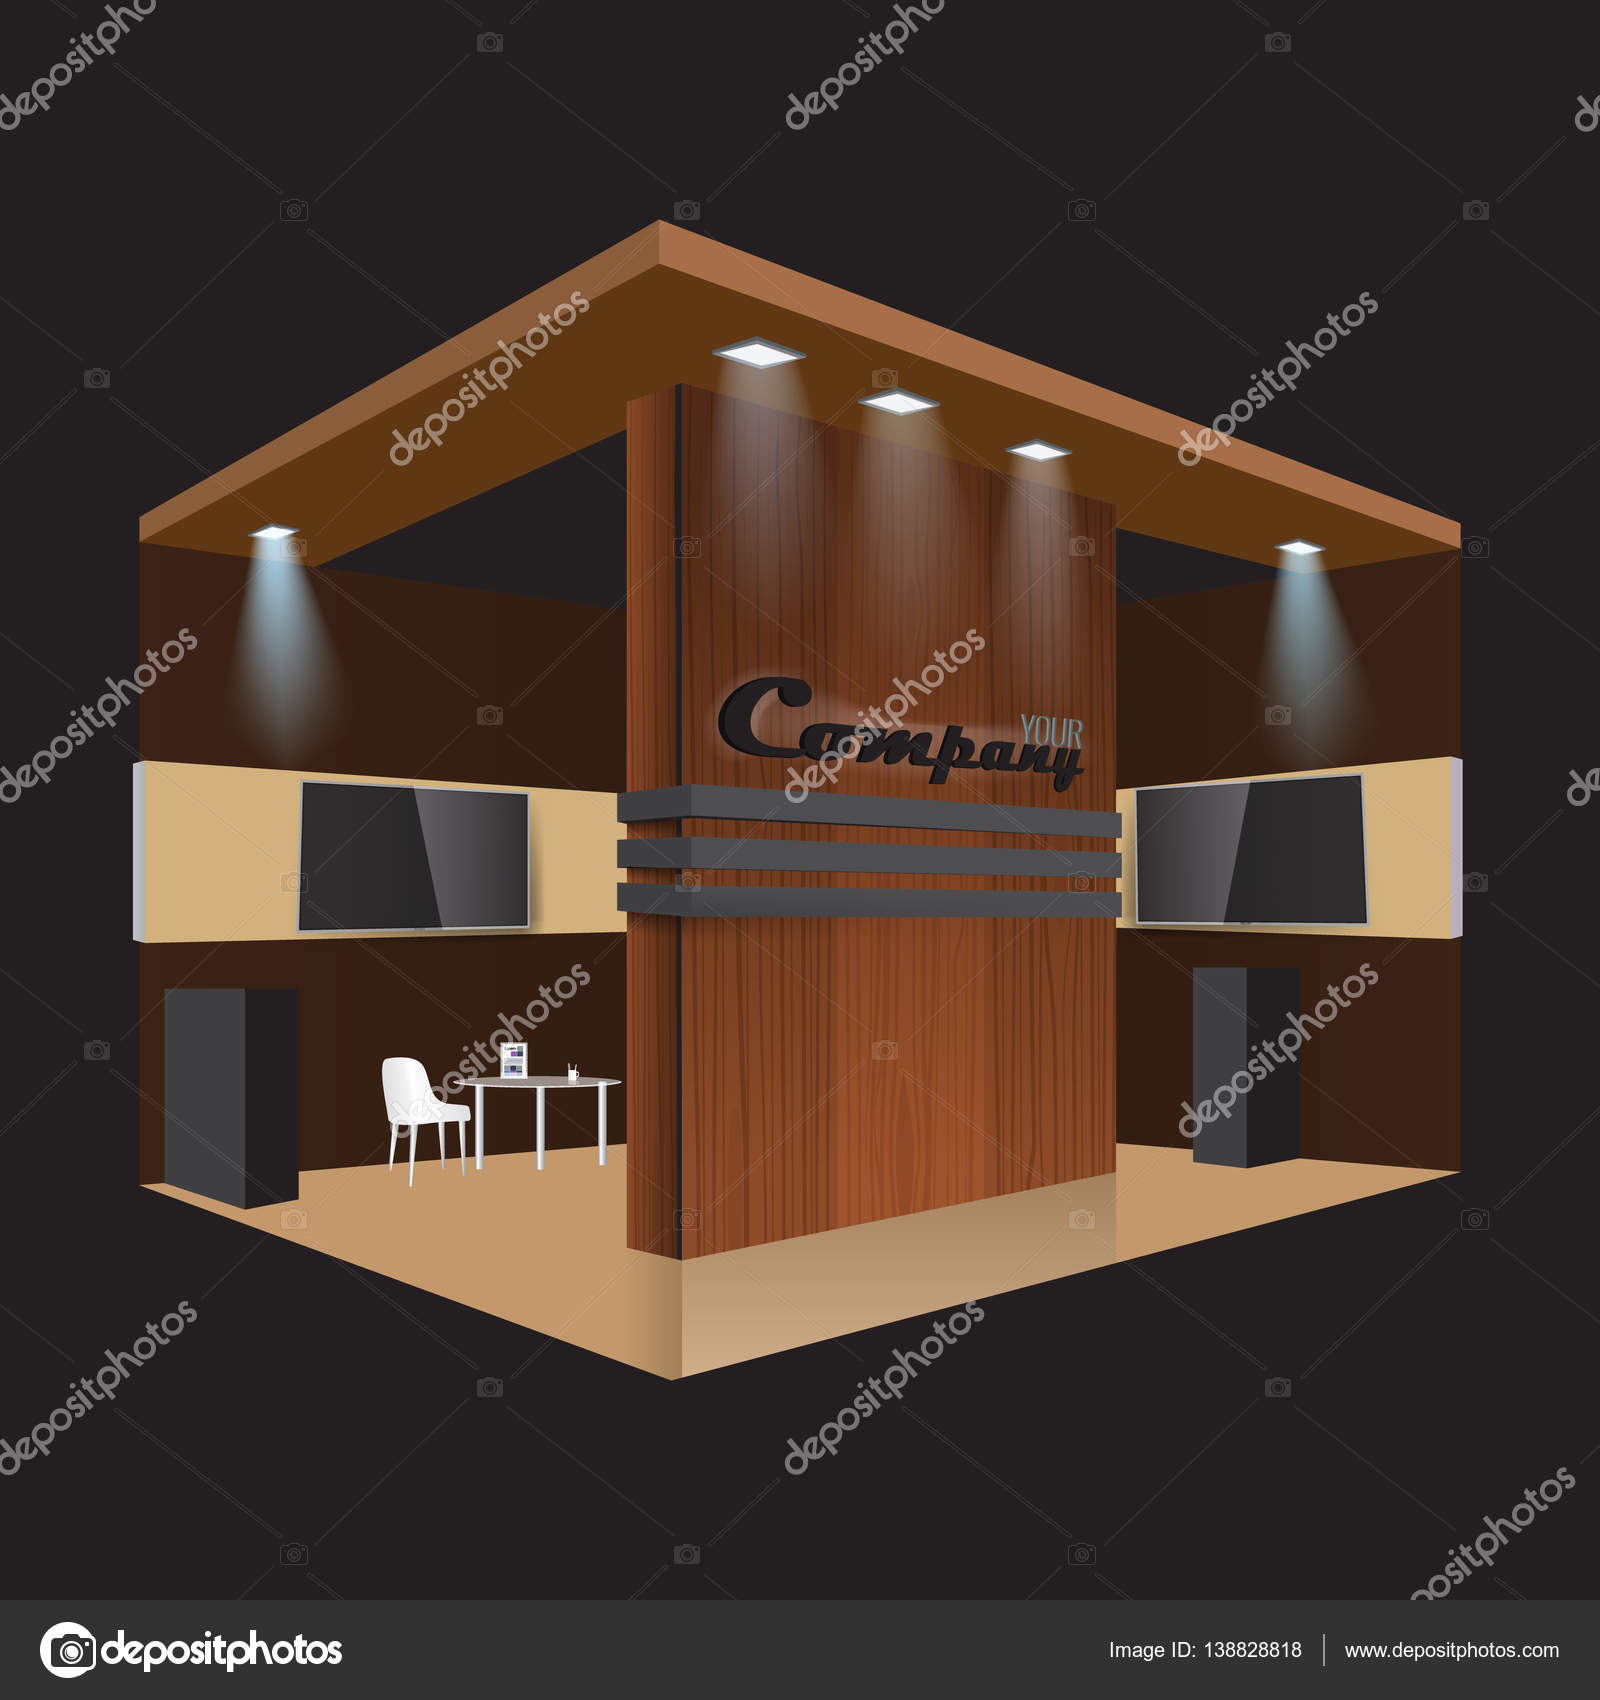 Creative Booth Exhibition : Creative exhibition stand design. booth template. corporate identity